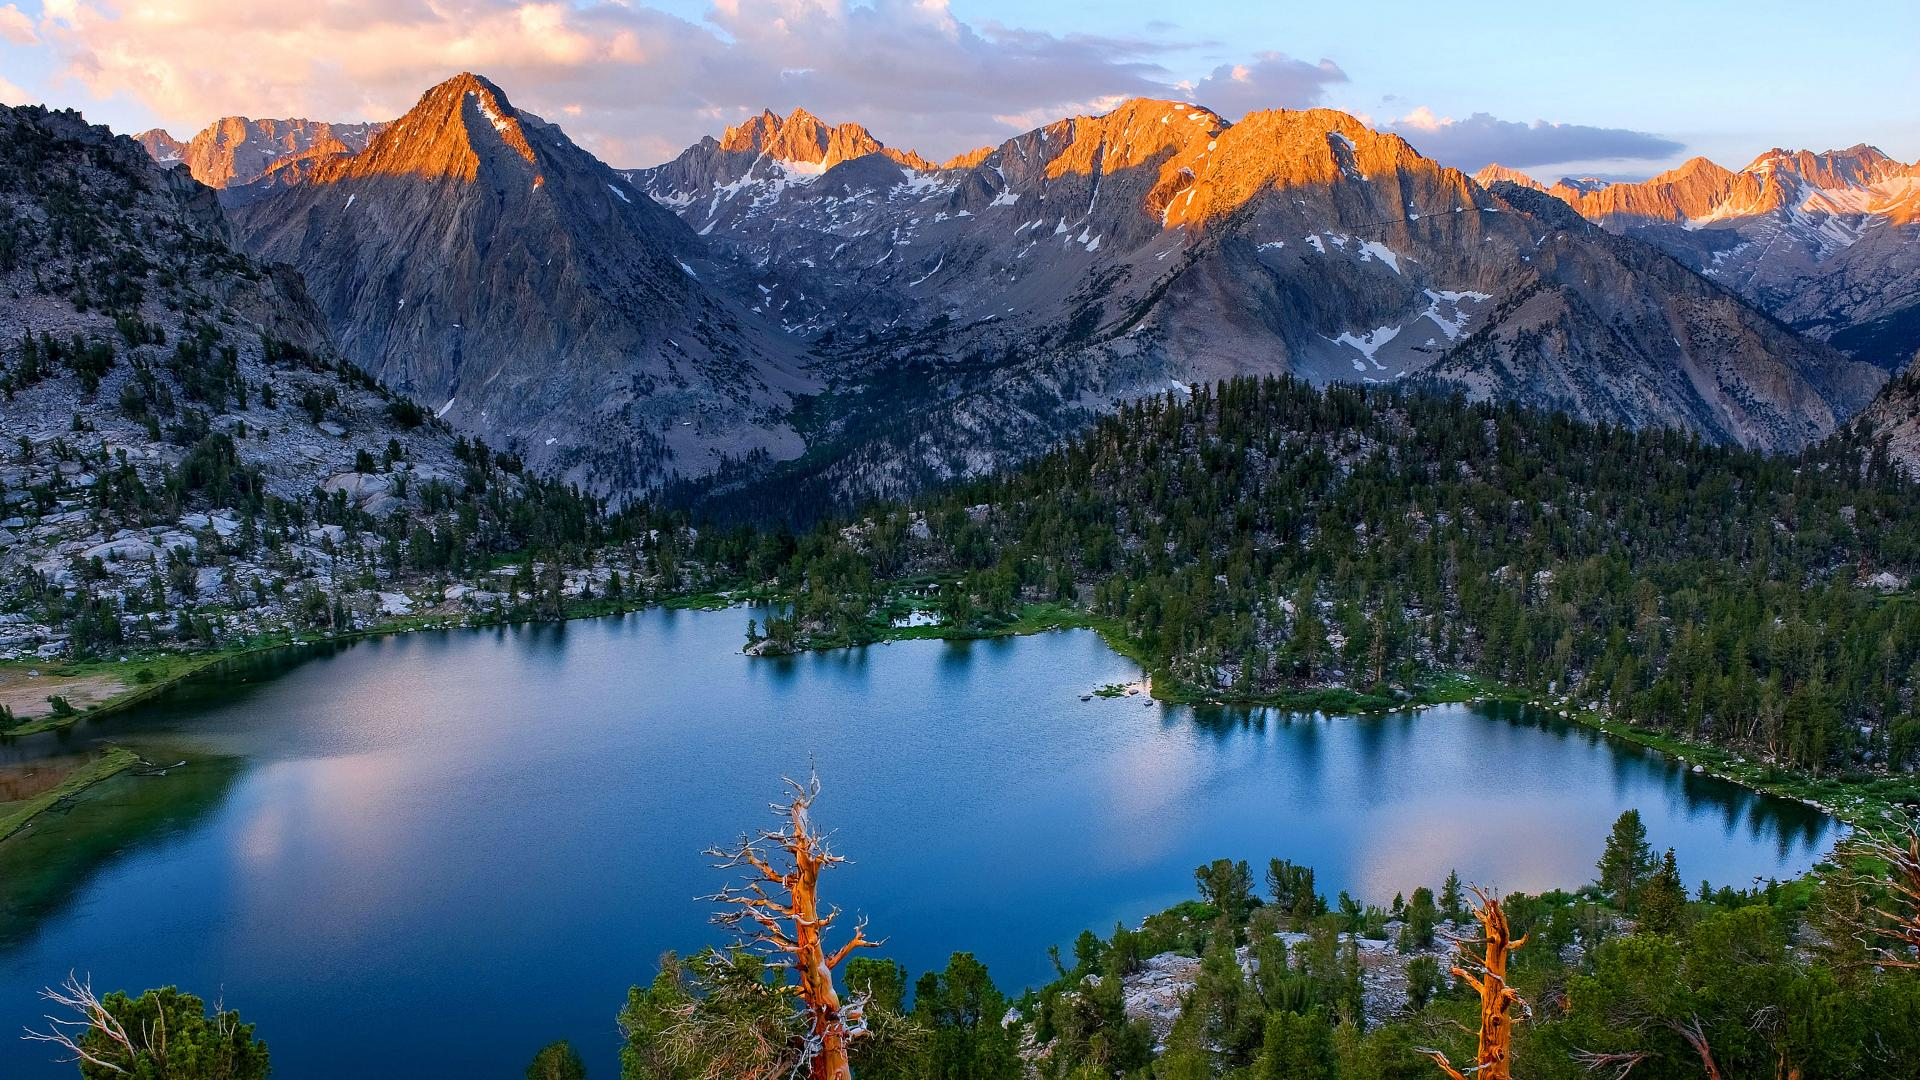 Kings Canyon National Park in California, USA